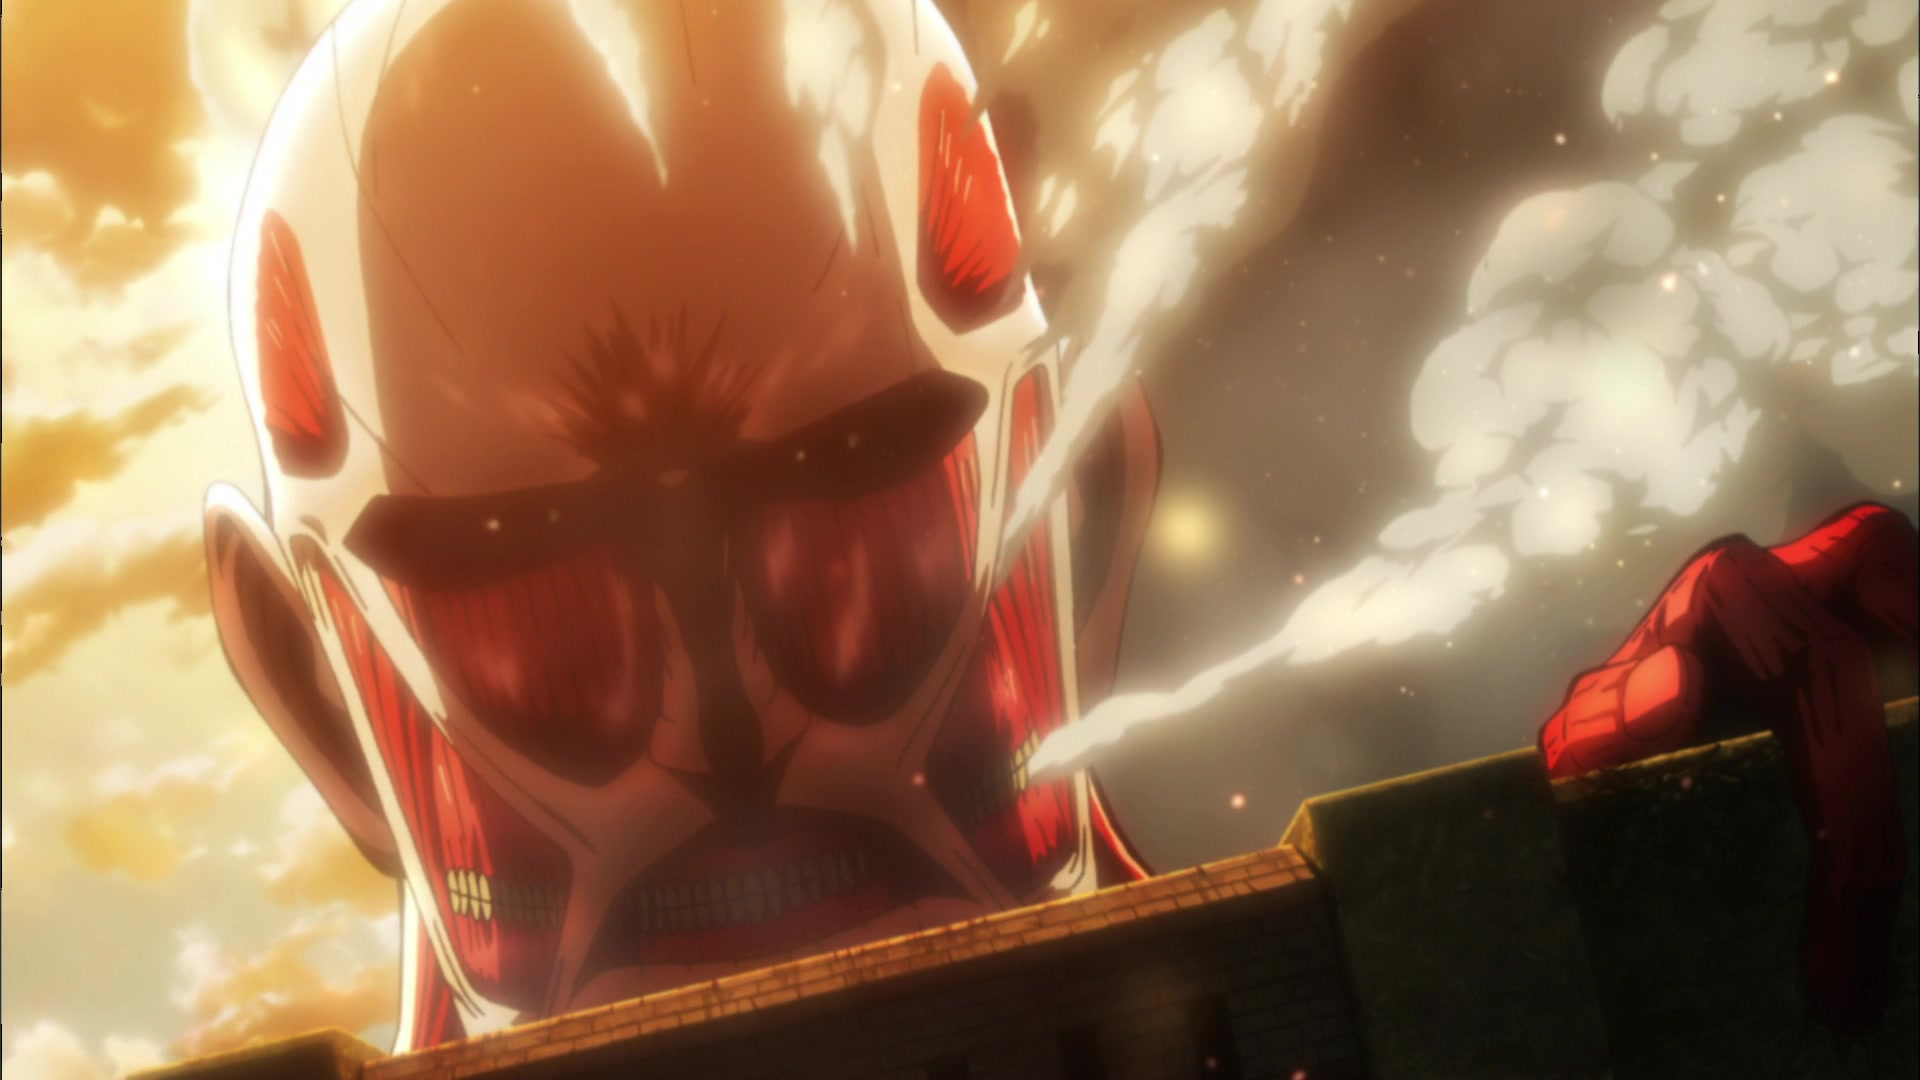 Attack on Titan Episode 1, To You, 2,000 Years in the Future